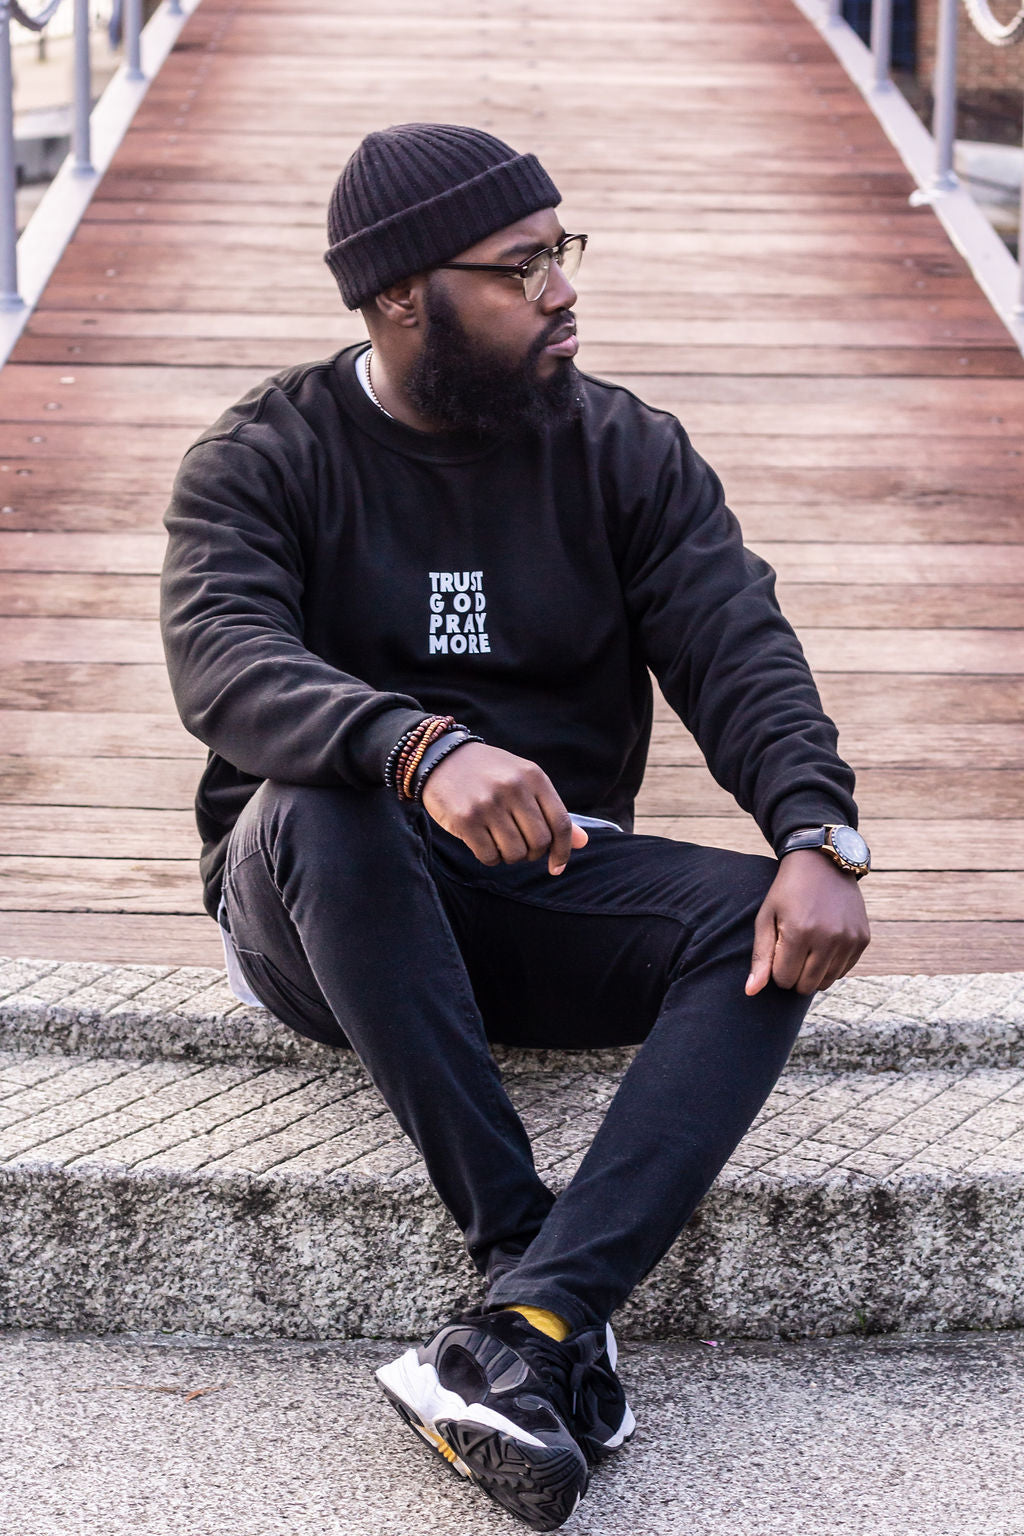 TRUST GOD Unisex Sweatshirt (Black)